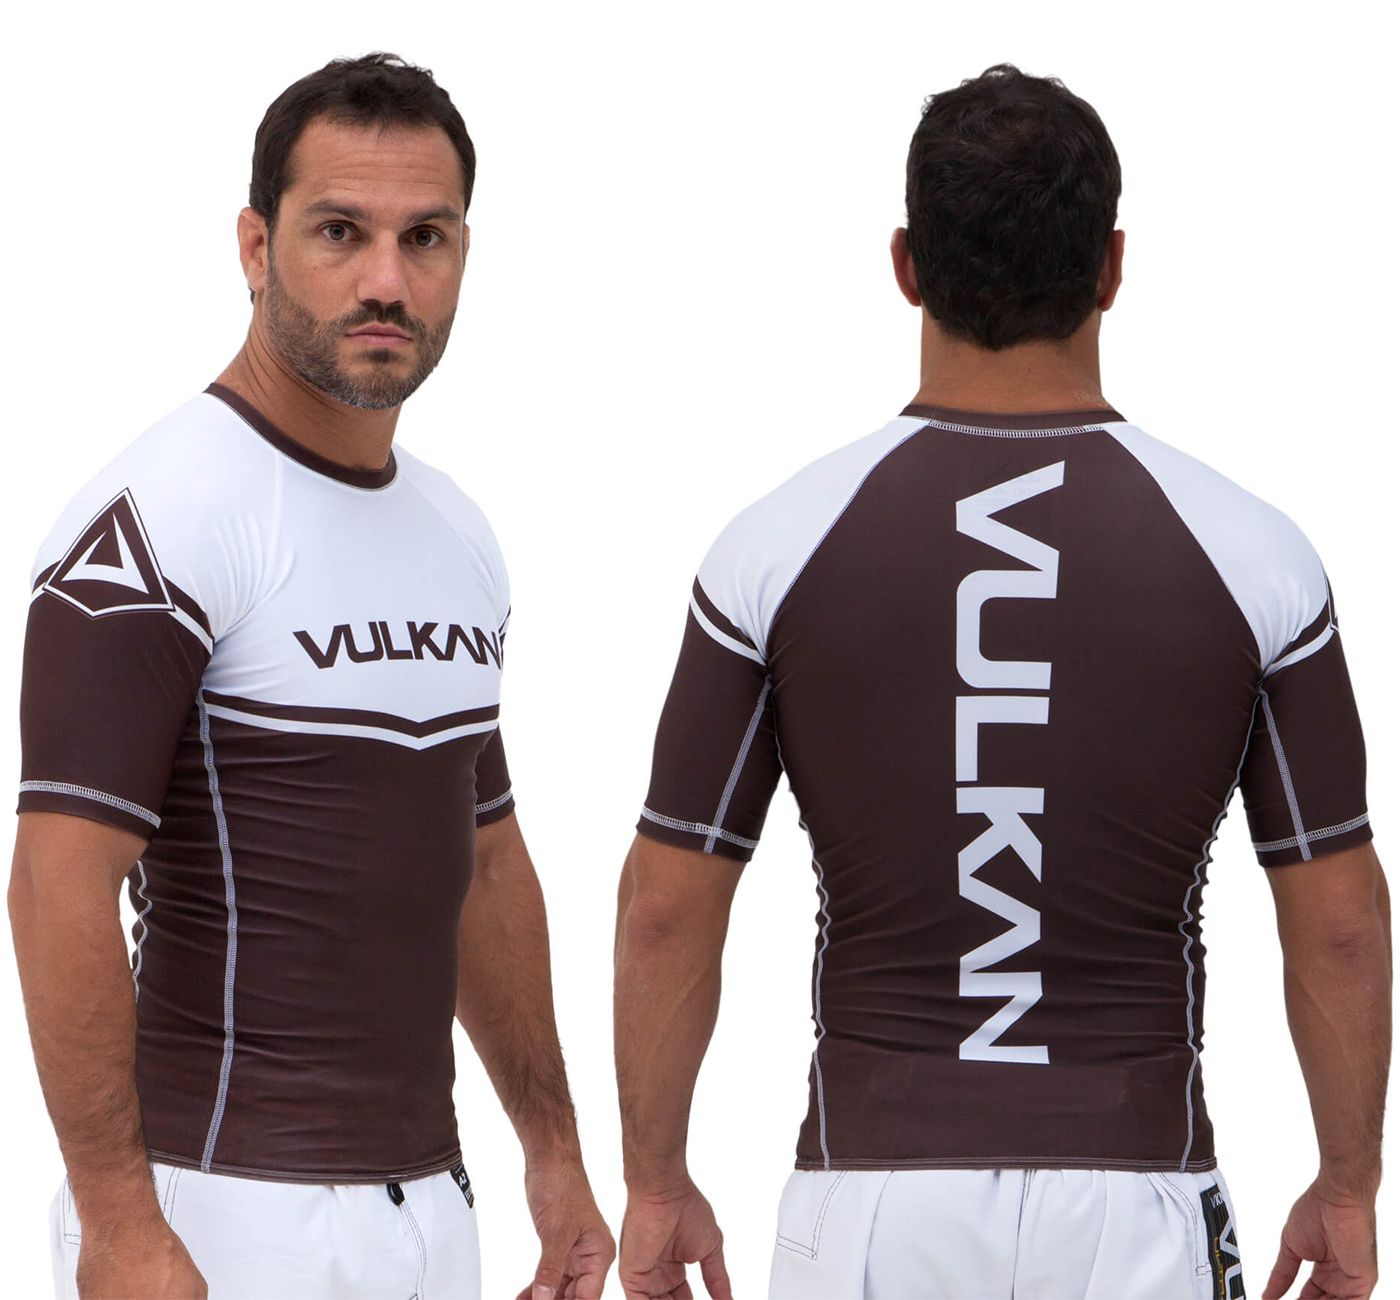 Vulkan Ranked Rashguard - Brown - LS